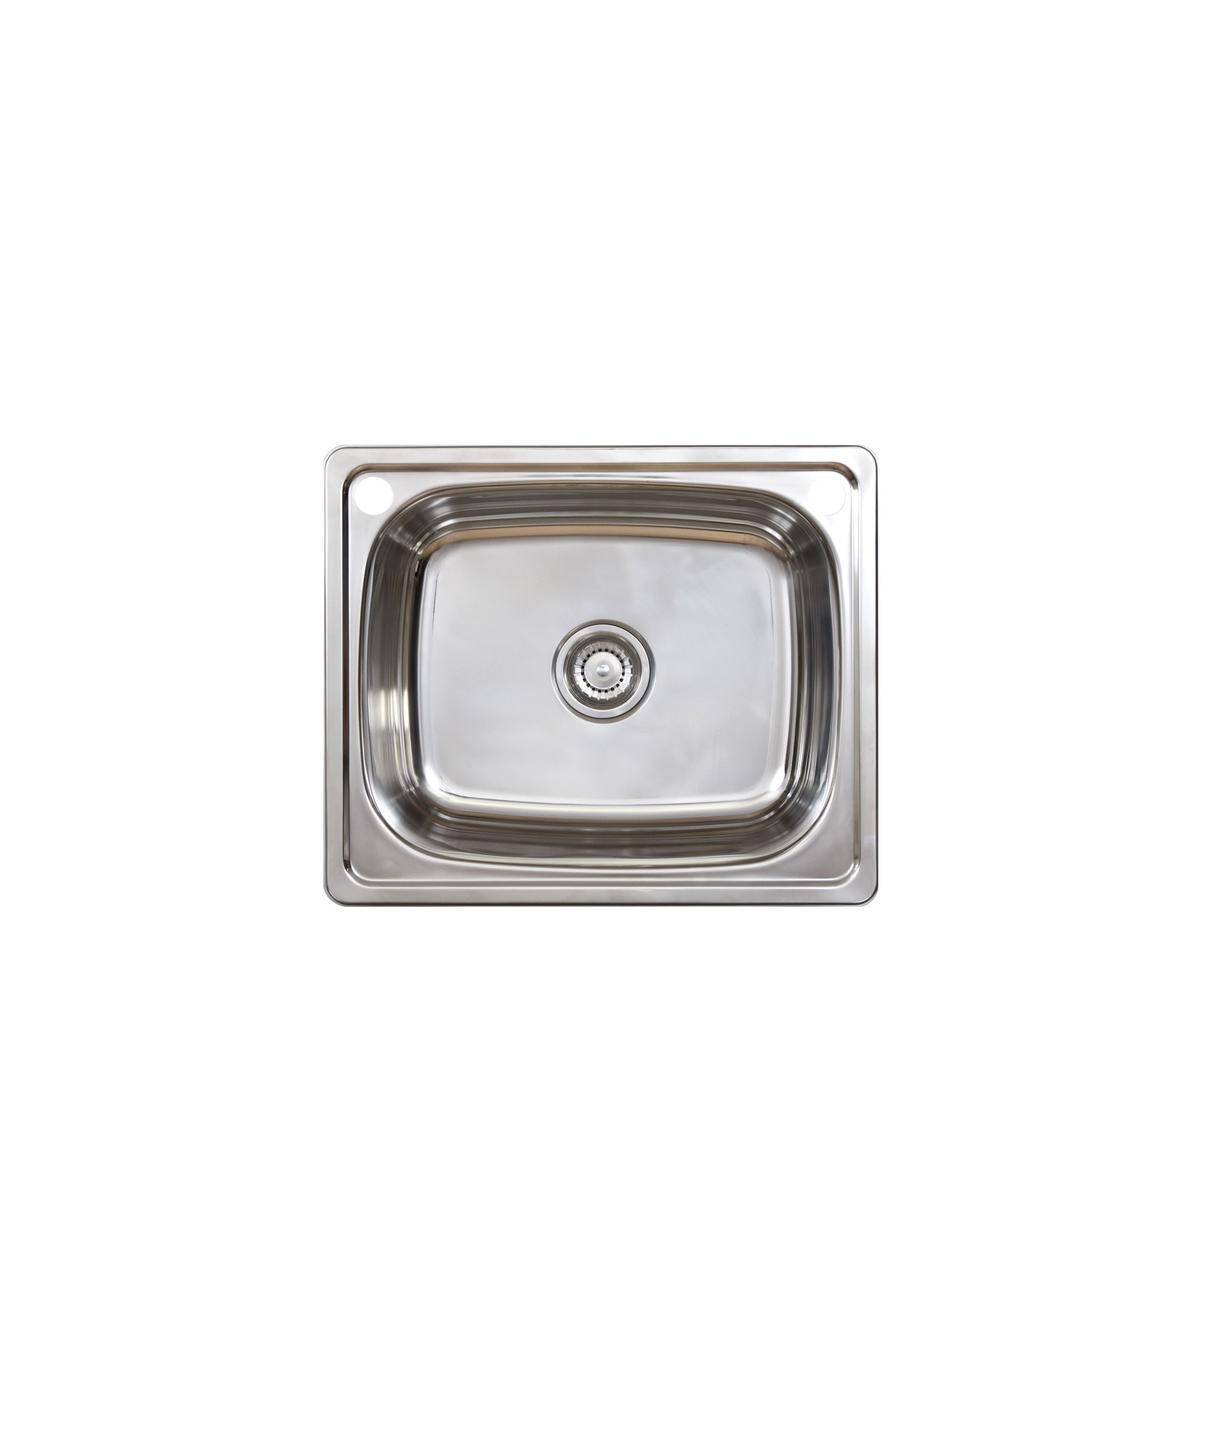 SEIMA ACERO 007 STAINLESS STEEL LAUNDRY SINK